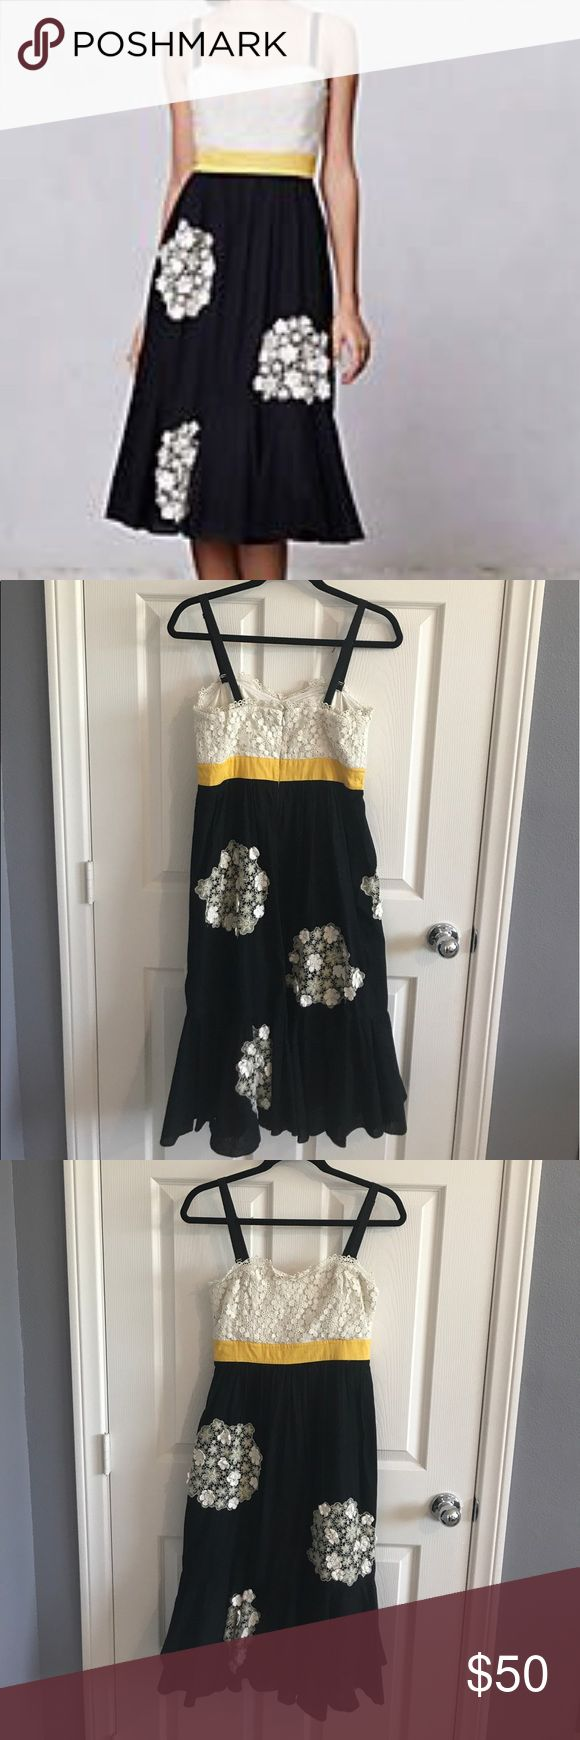 Anthropologie SALE • Dandelion Wish Dress 🌟 GOOD Condition • The bodice of this dress has delicate floral lace and those same flowers are appliqued to the skirt portion in little firework-like puffs • Designed with a longer silhouette, sweetheart bodice and pop of yellow on white and black • removable straps • Add this beauty to your wardrobe 🌟 Anthropologie Dresses